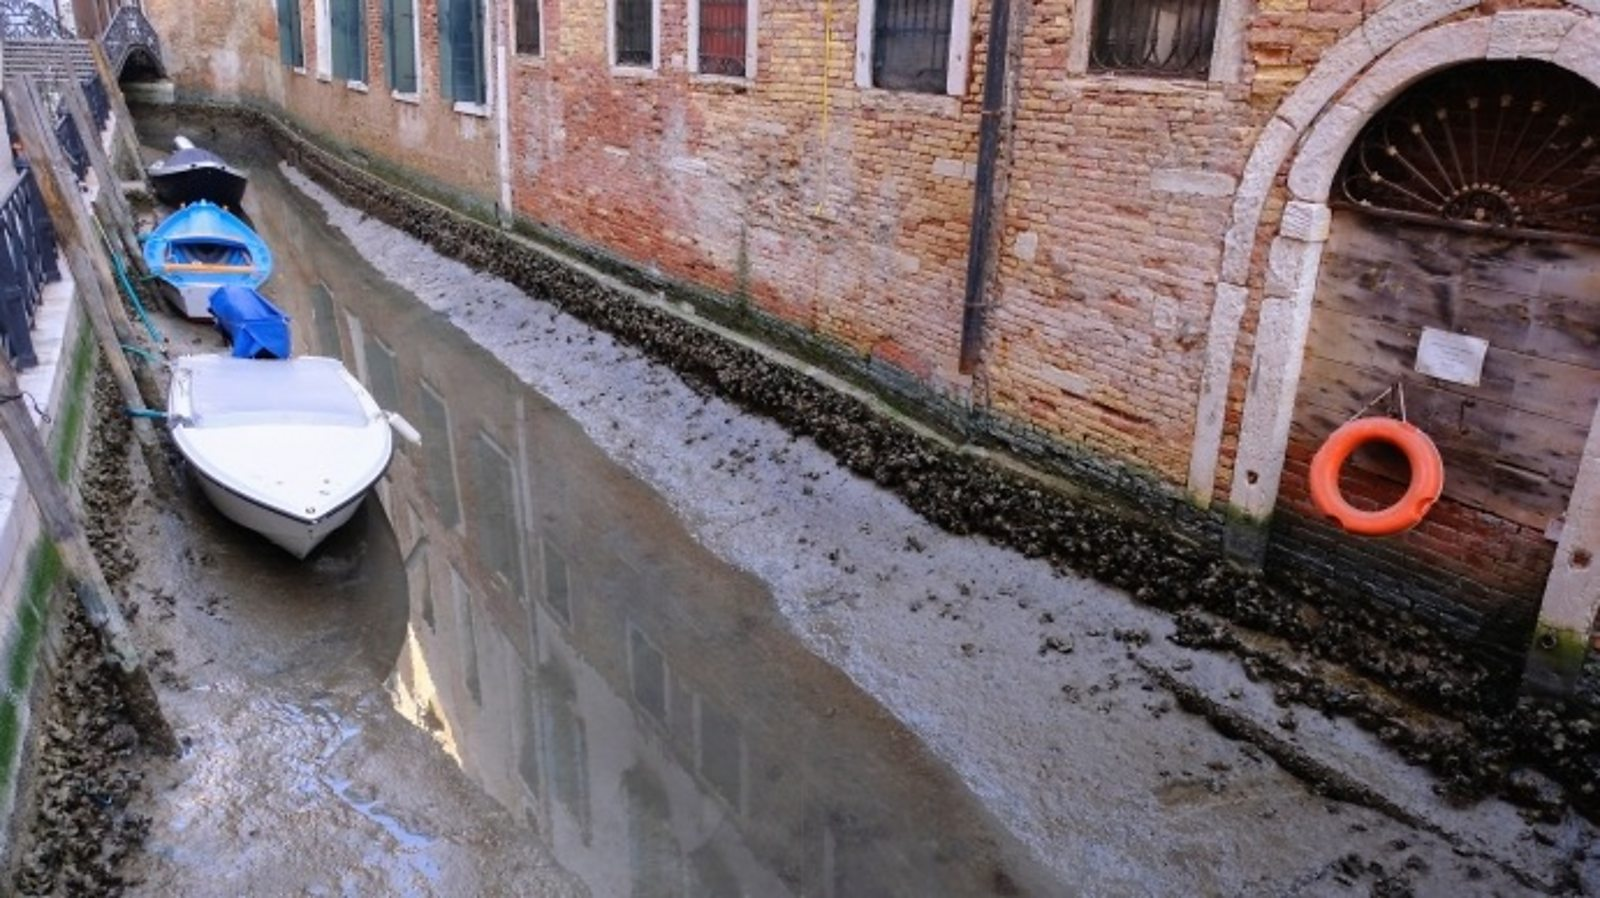 Low tides leave Venice canals dry